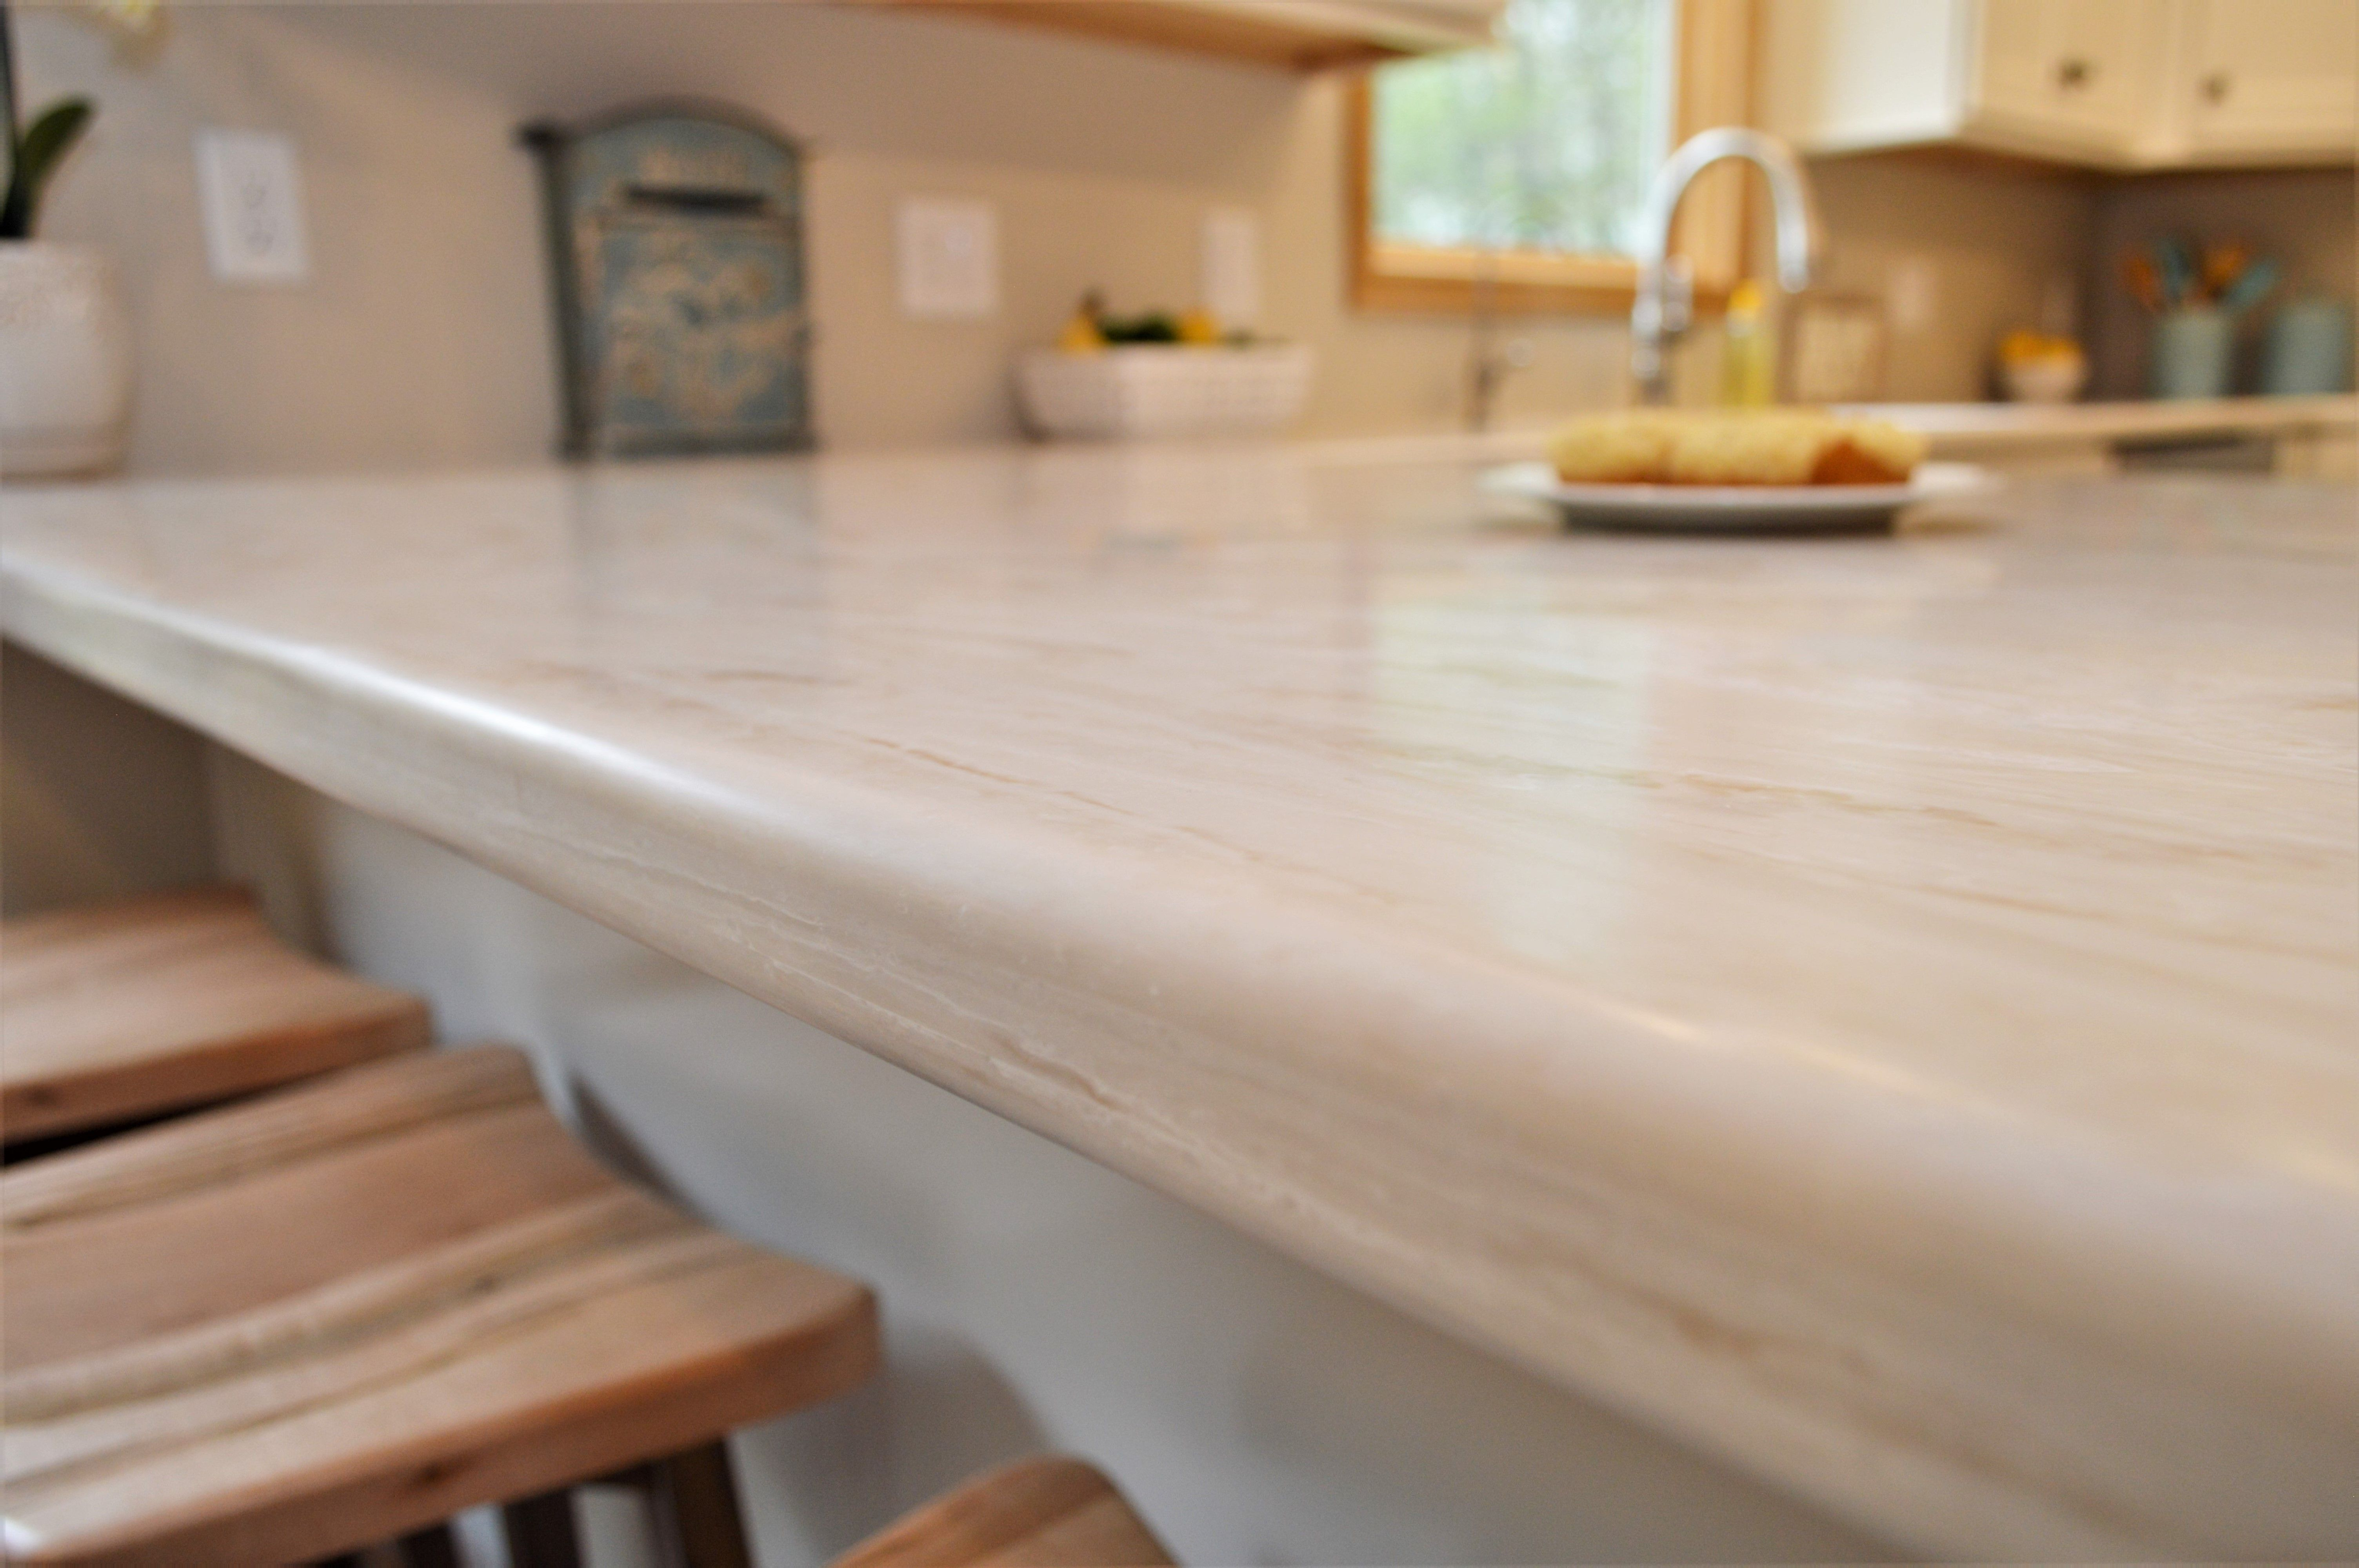 Bailey S Cabinets Corian Solid Surface Counter Top 3 8 Top